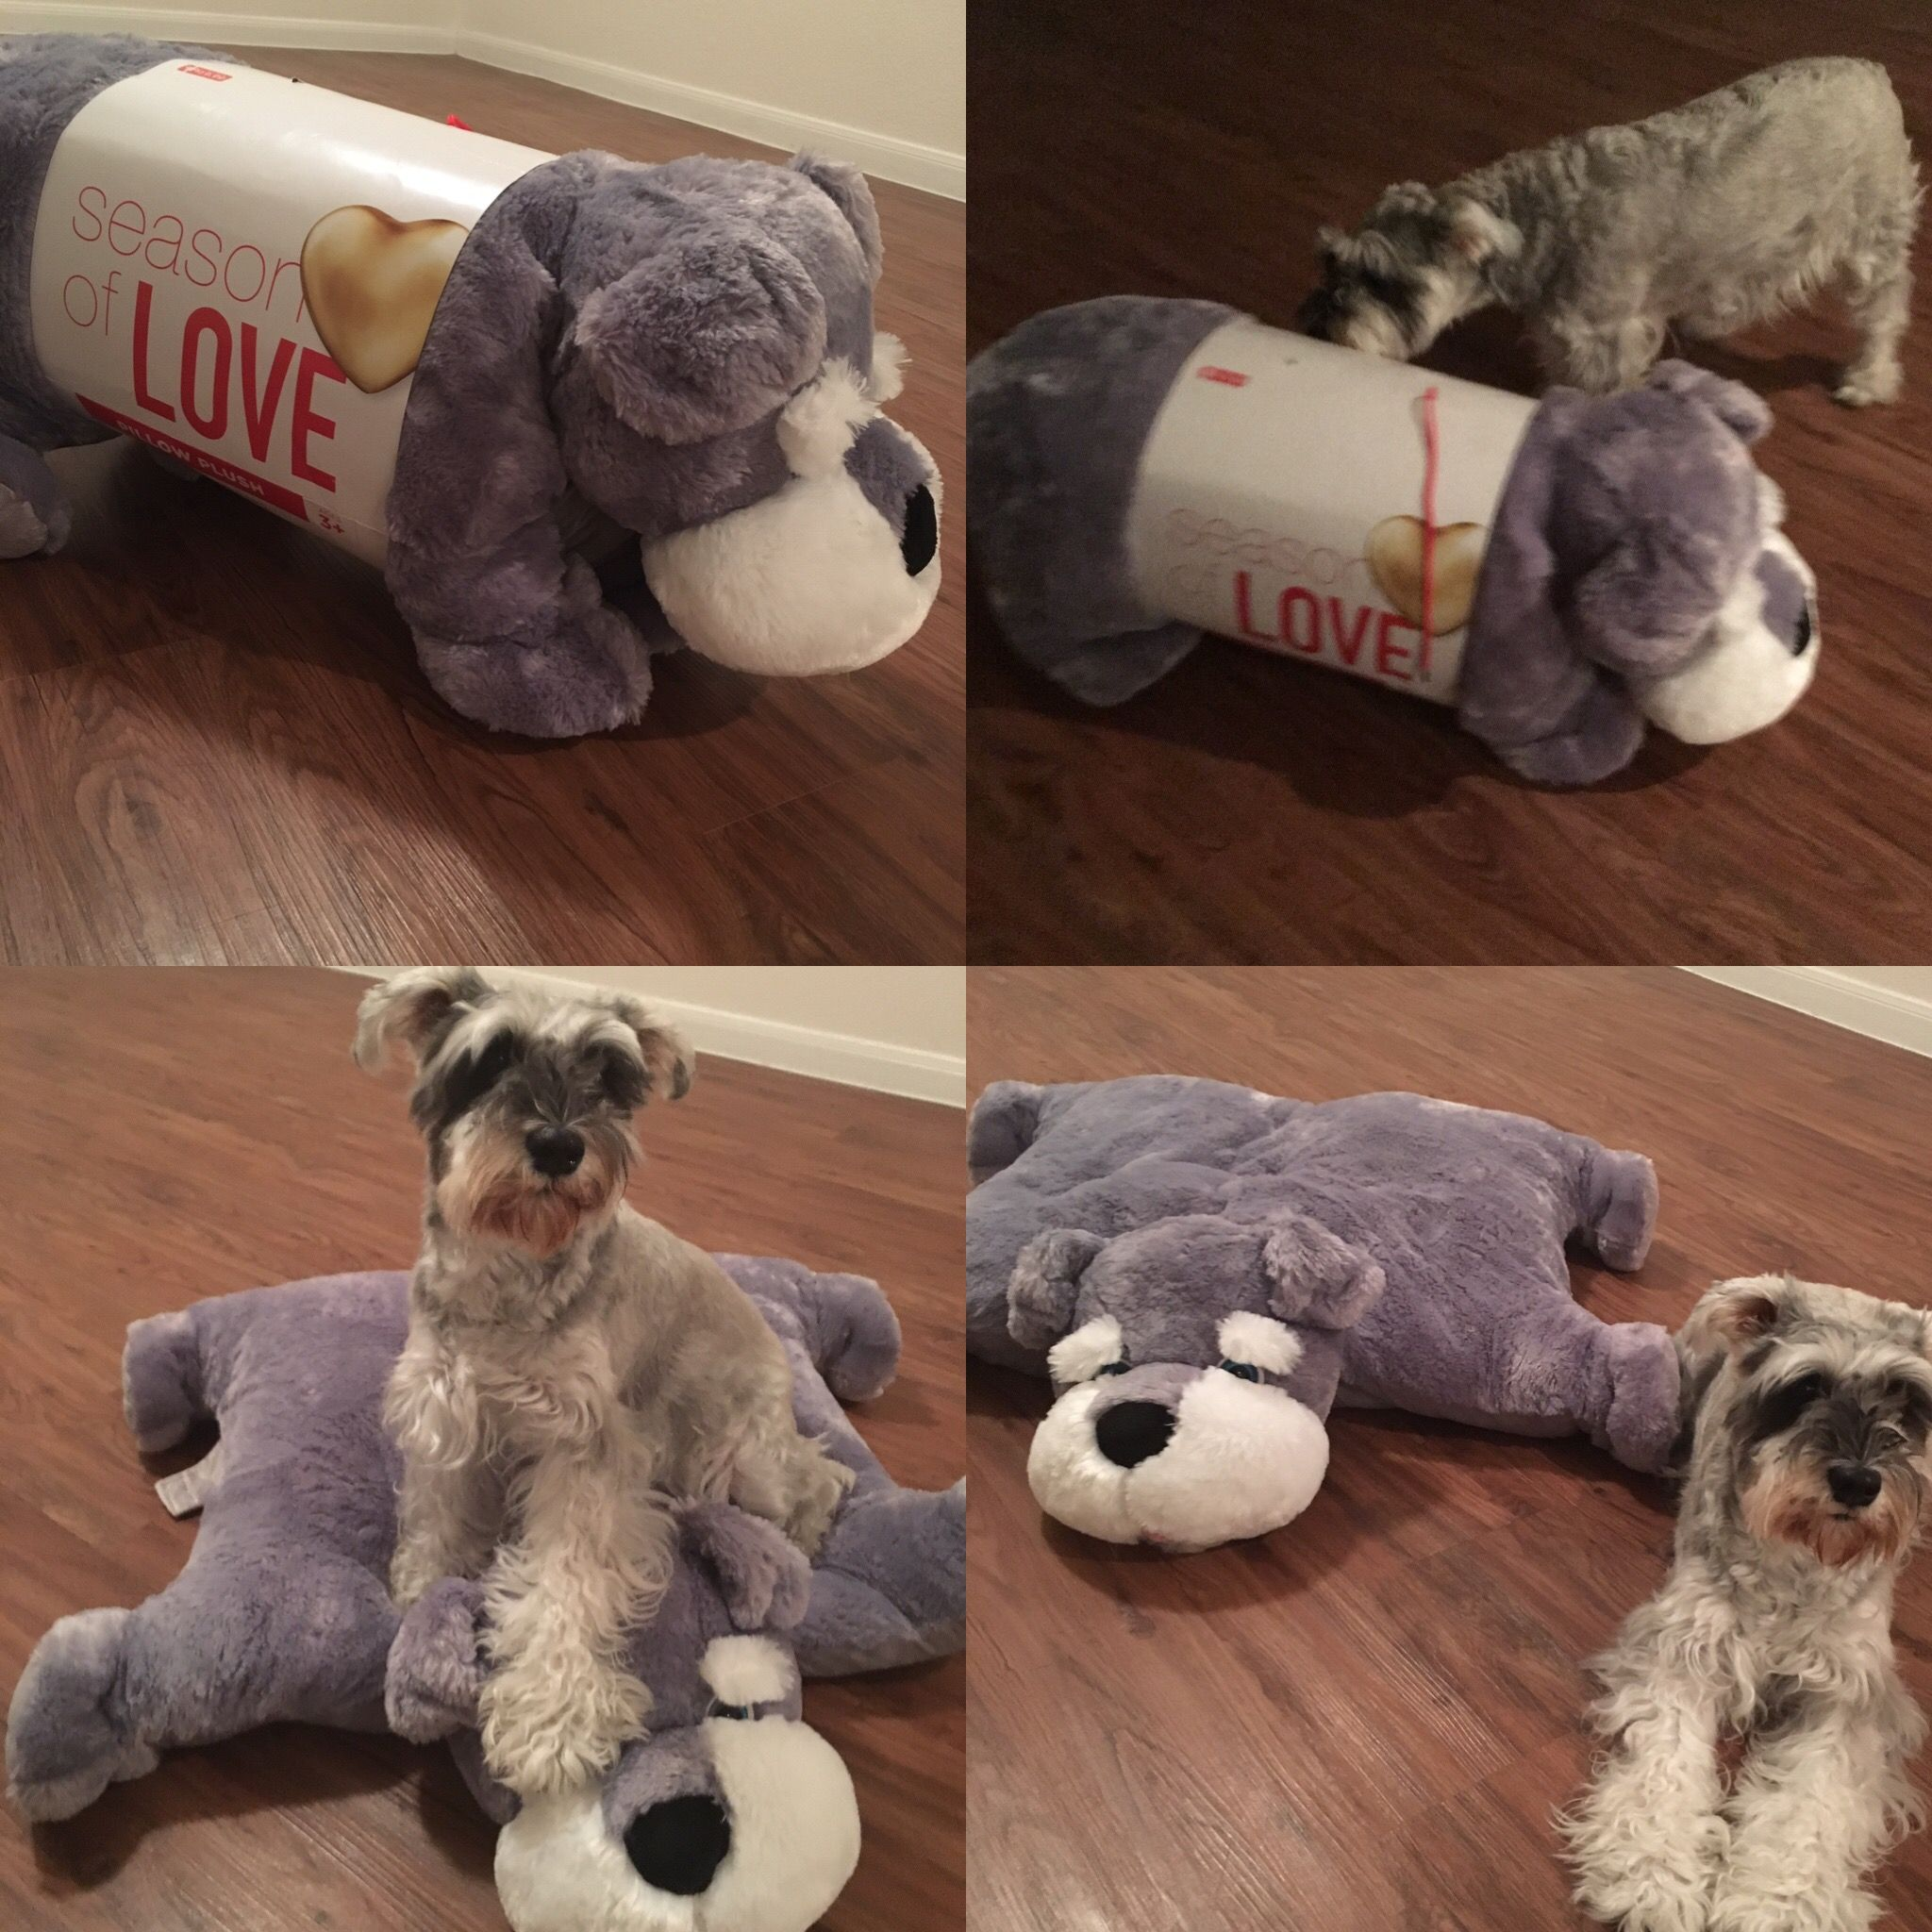 Must have pet pillow for schnauzers ️ walgreens 19.99